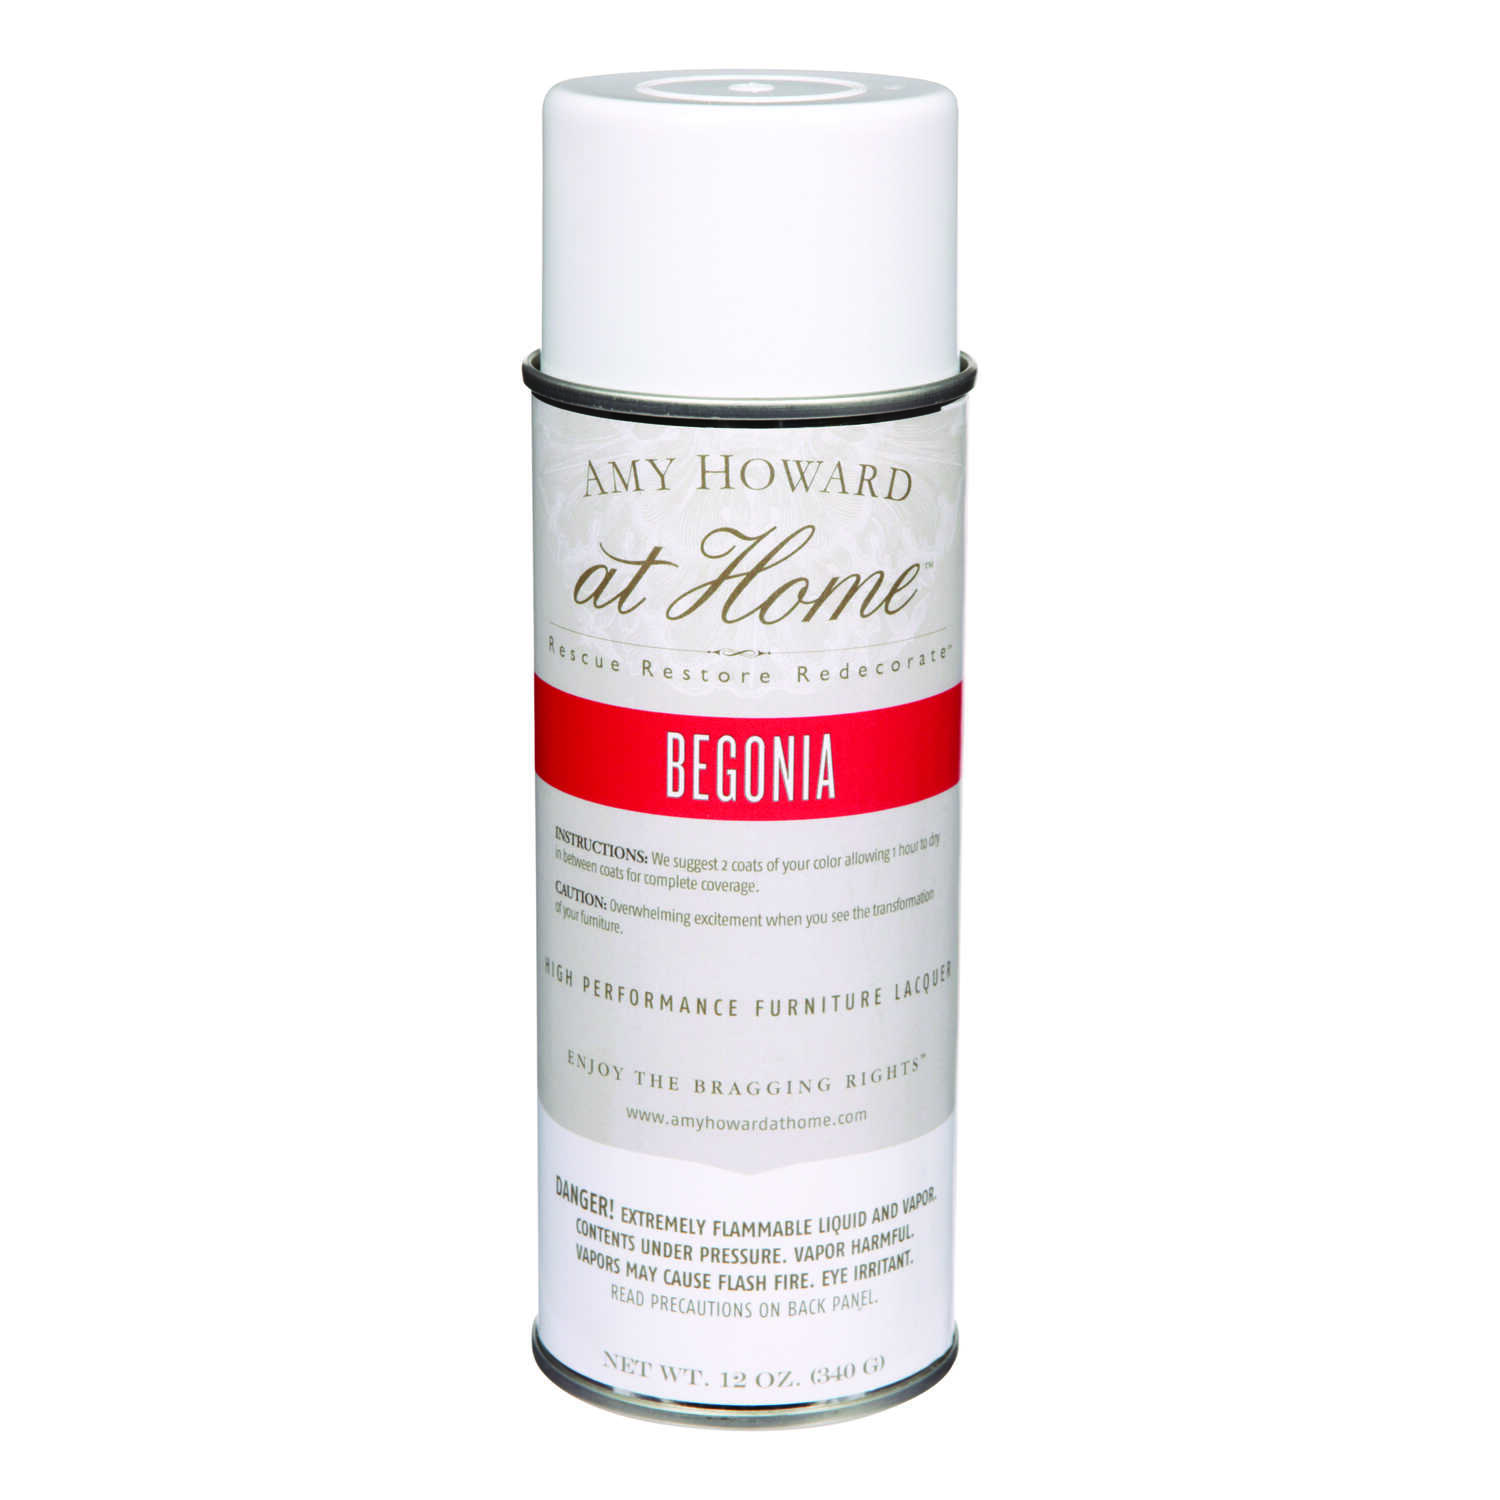 Amy Howard at Home  Gloss  High Performance Furniture Lacquer Spray  12 oz. Begonia